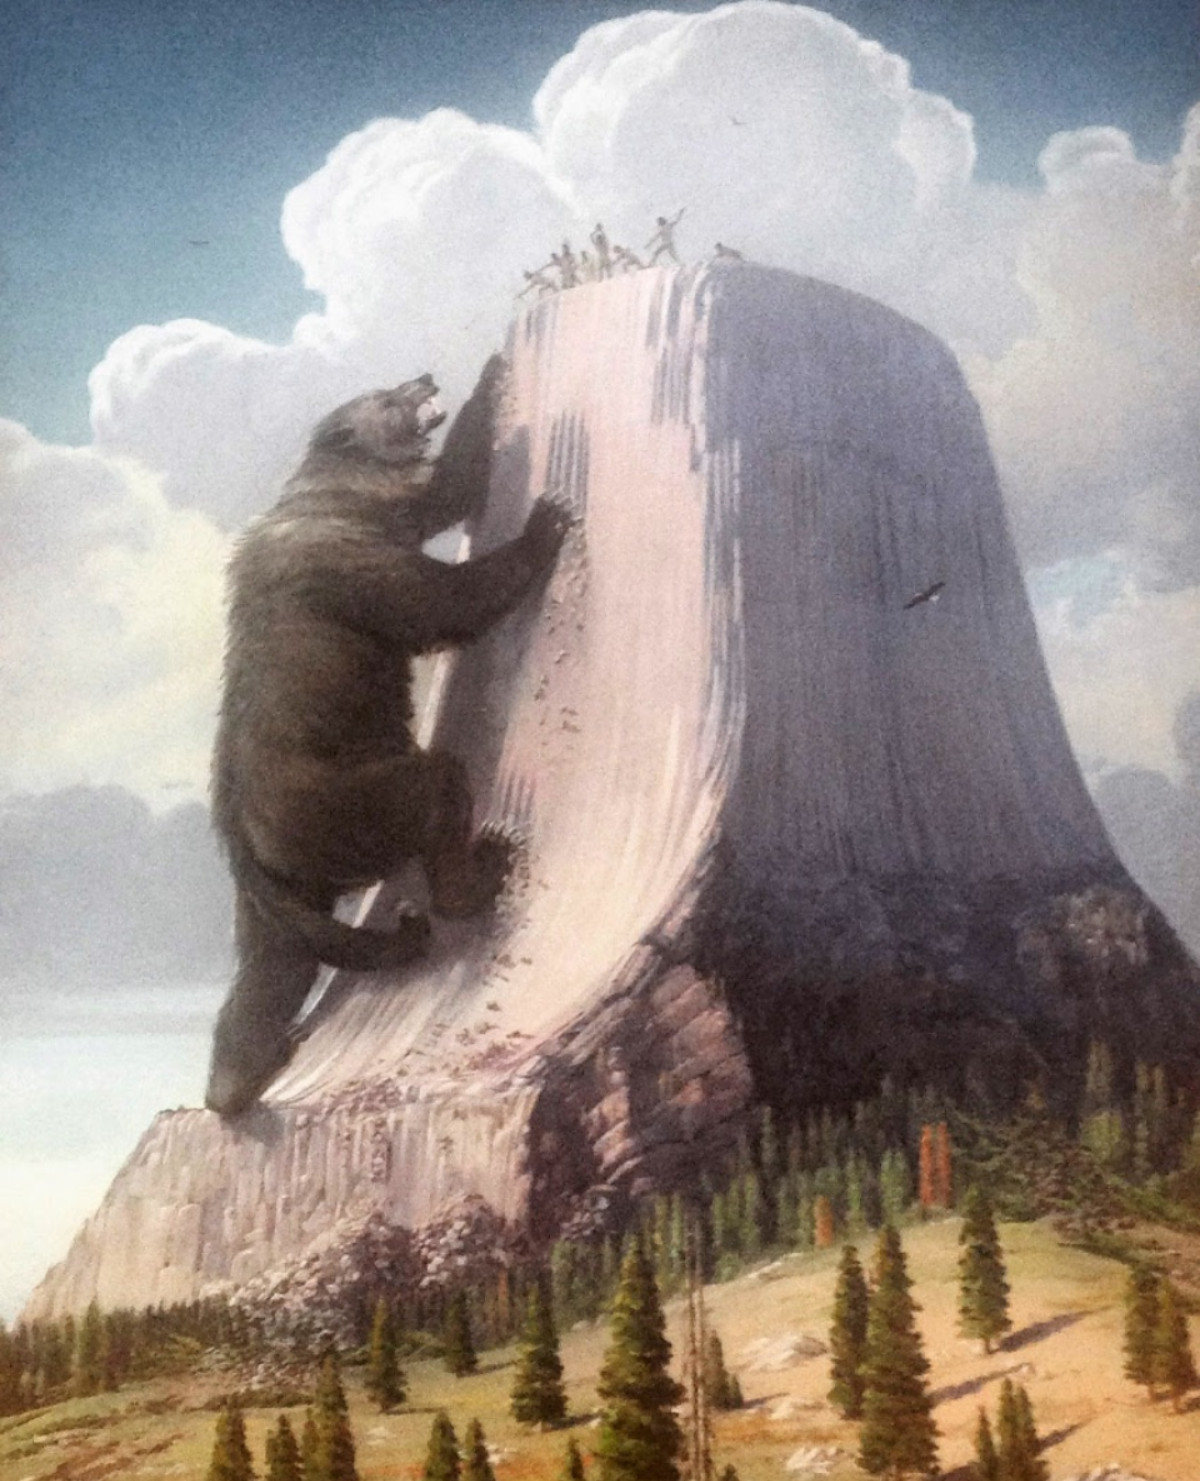 A painting of a gigantic bear climbing the side of a tall rocky tower.